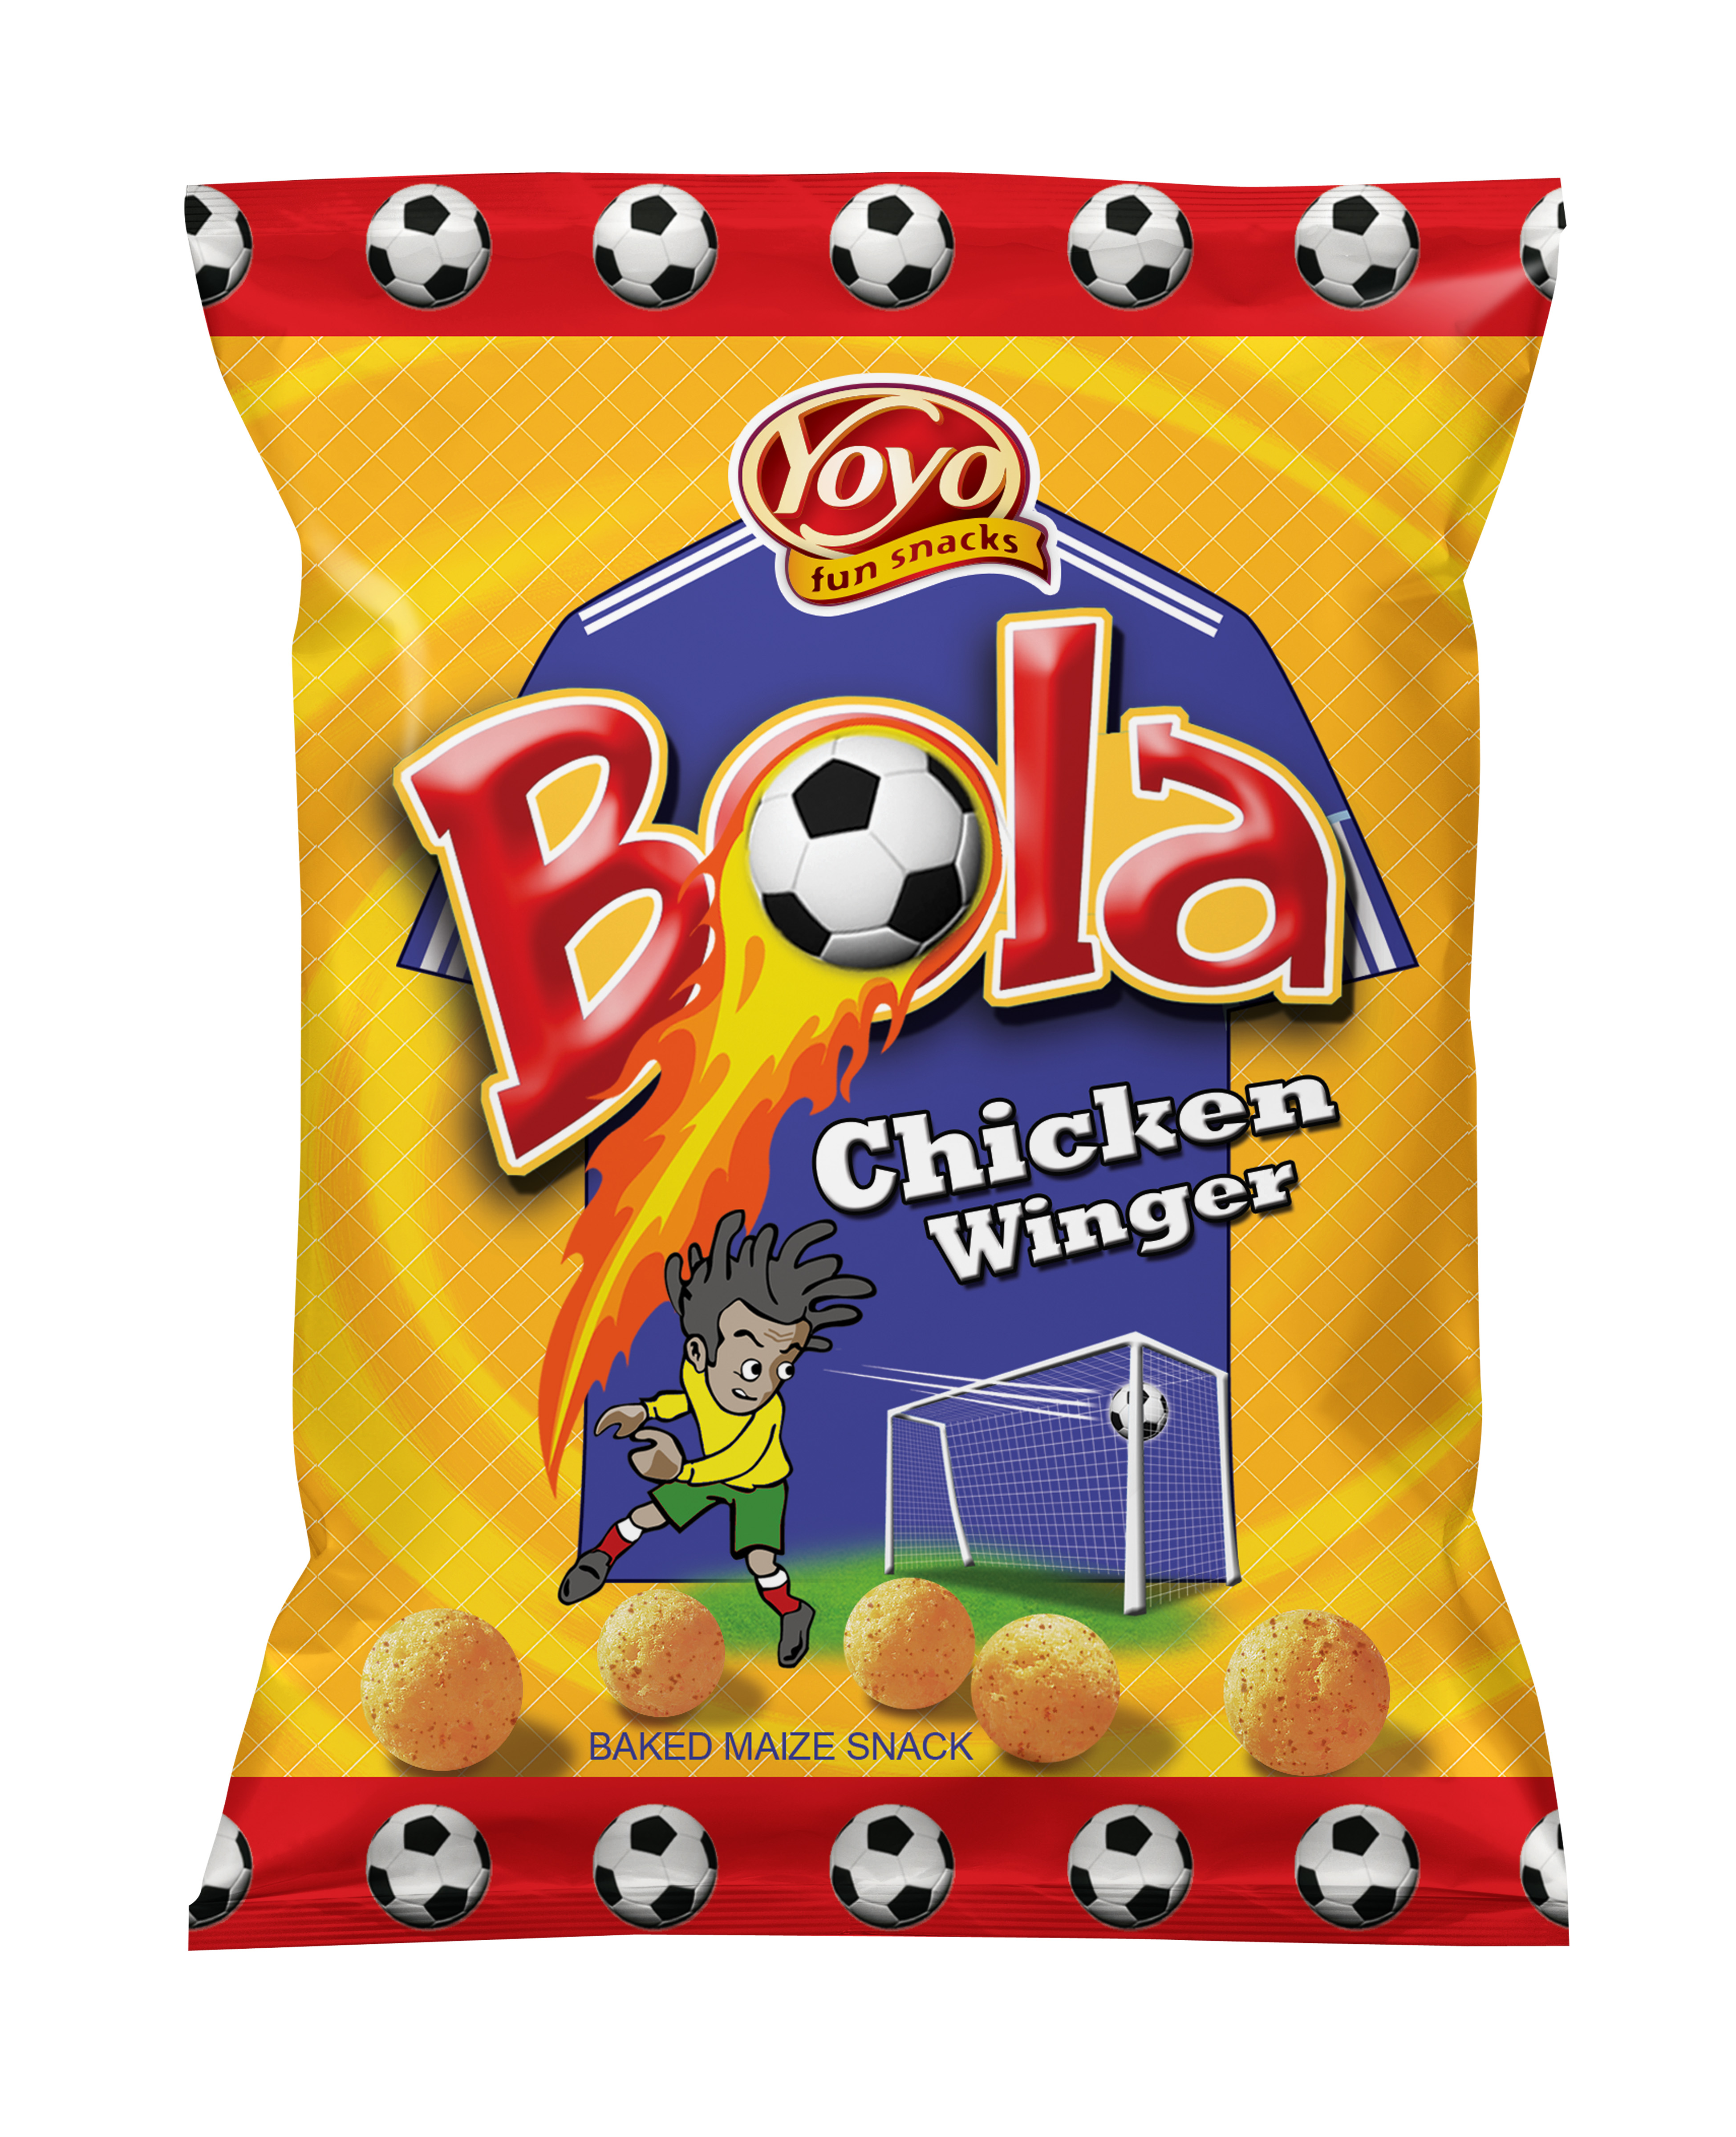 New Bola 3D Chicken Winger 1 m